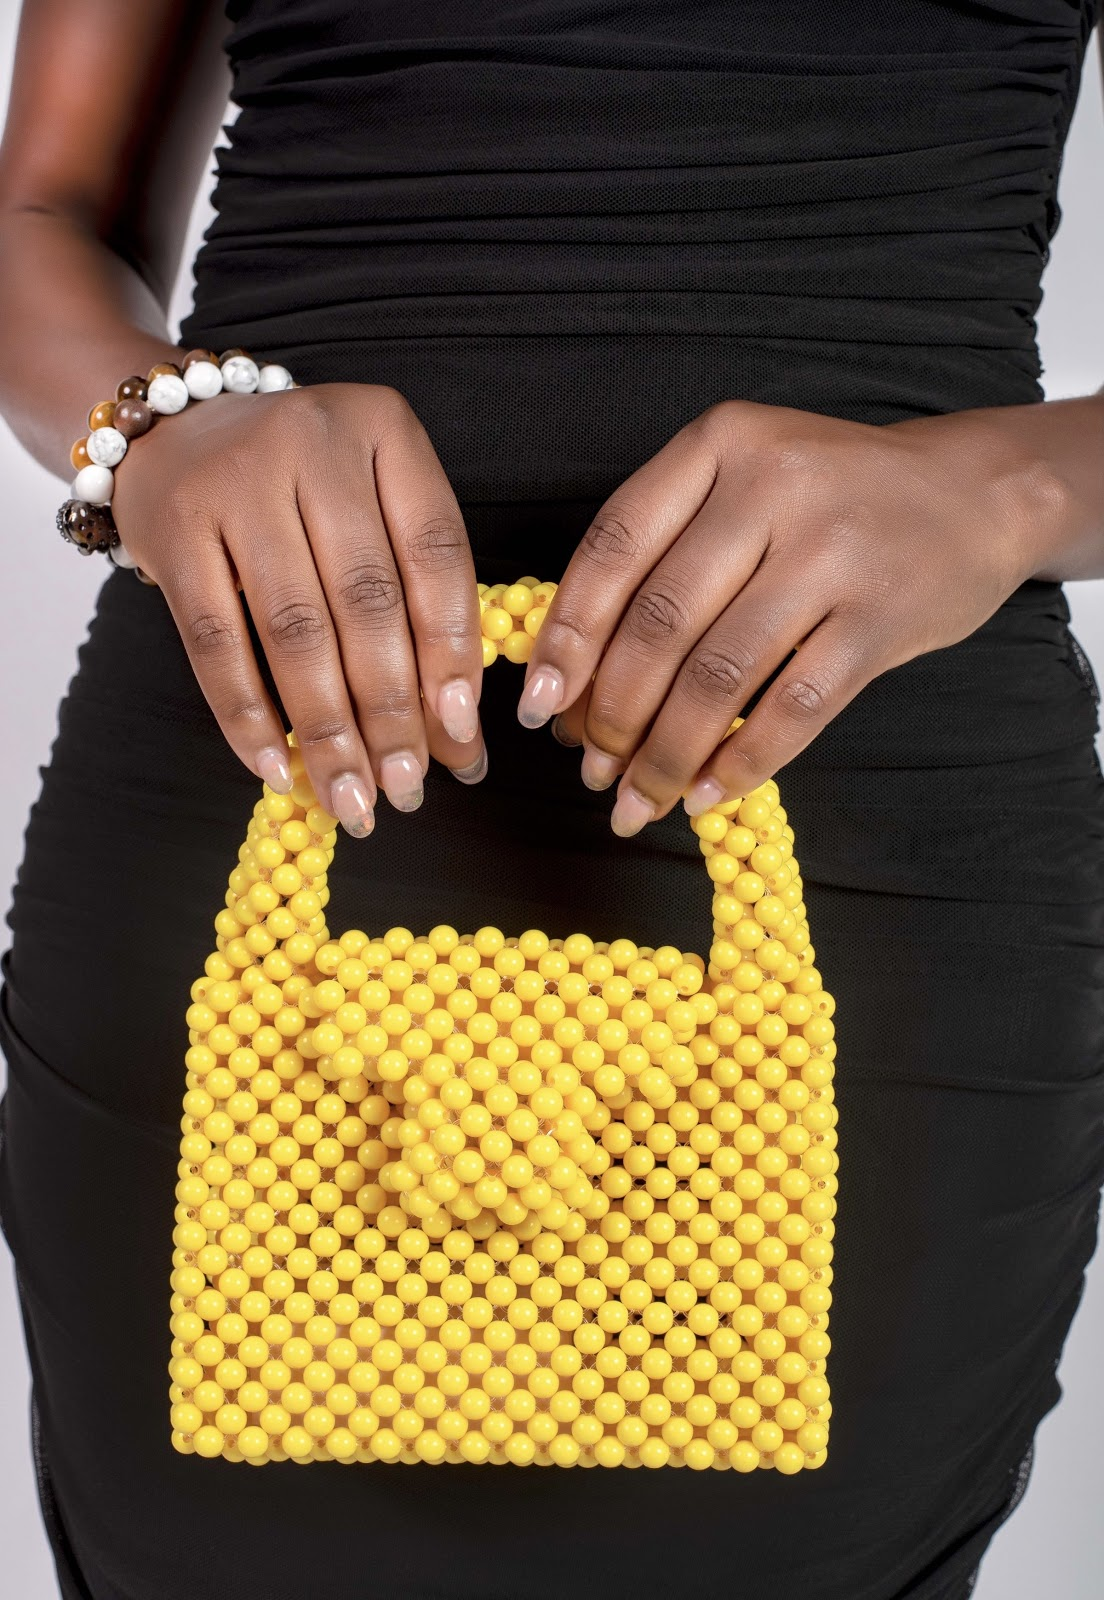 Pictured above is the Tifa bag, designed and handmade by Egbeyemi